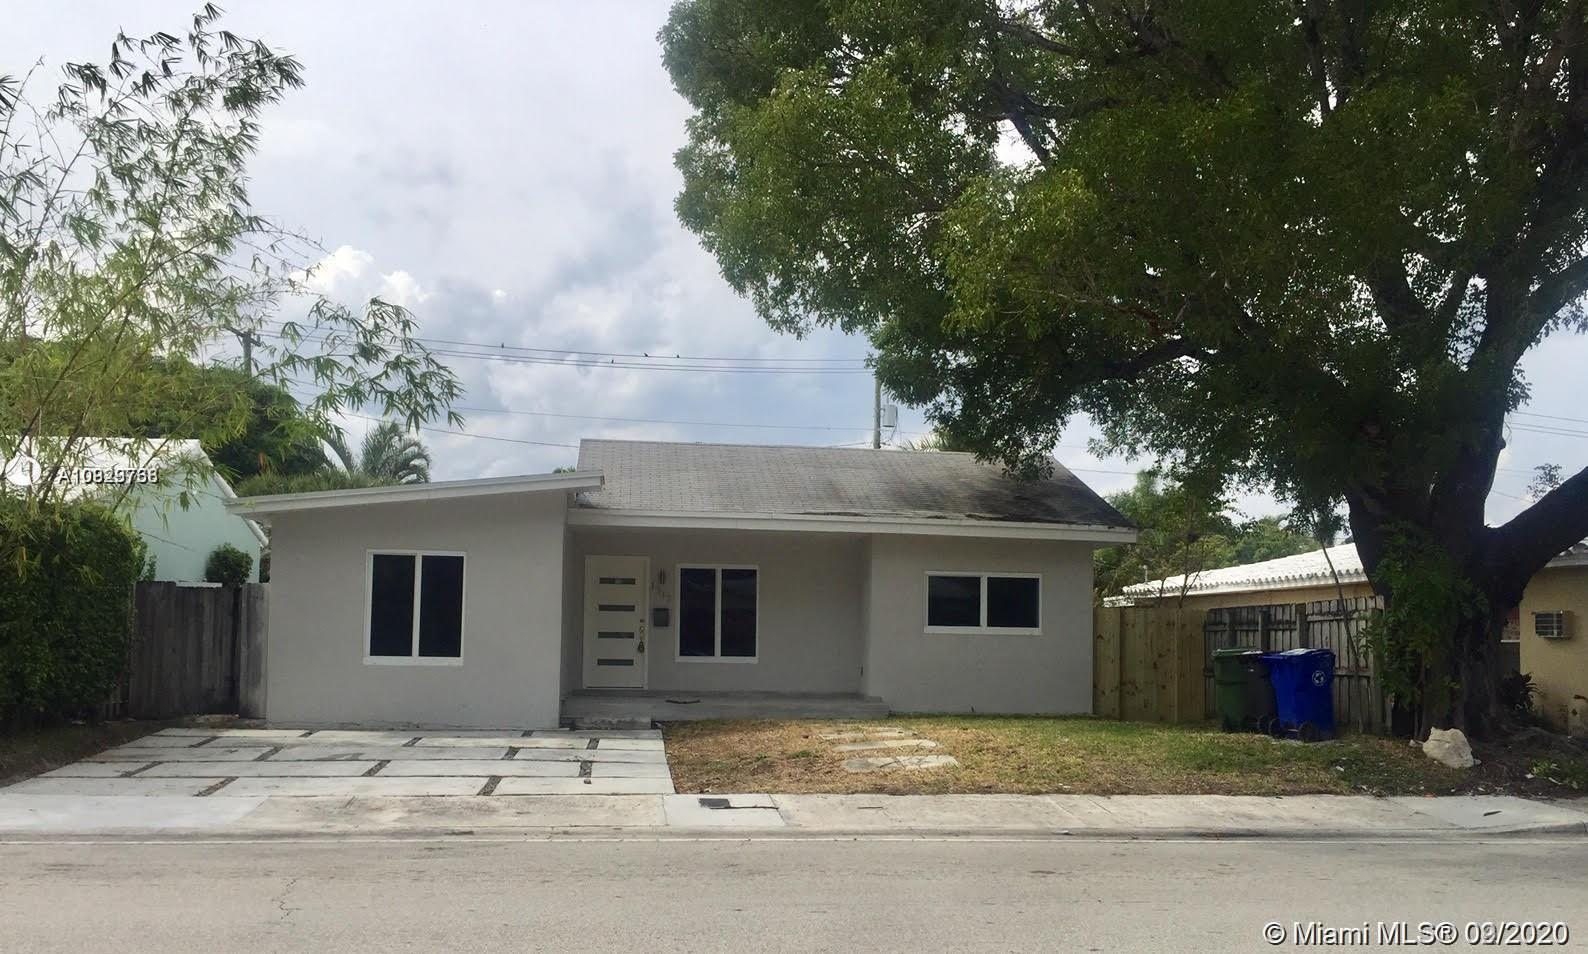 New beautiful remodeled home in the heart of Fort Lauderdale. This home features 3 bedrooms, 2.5 bat